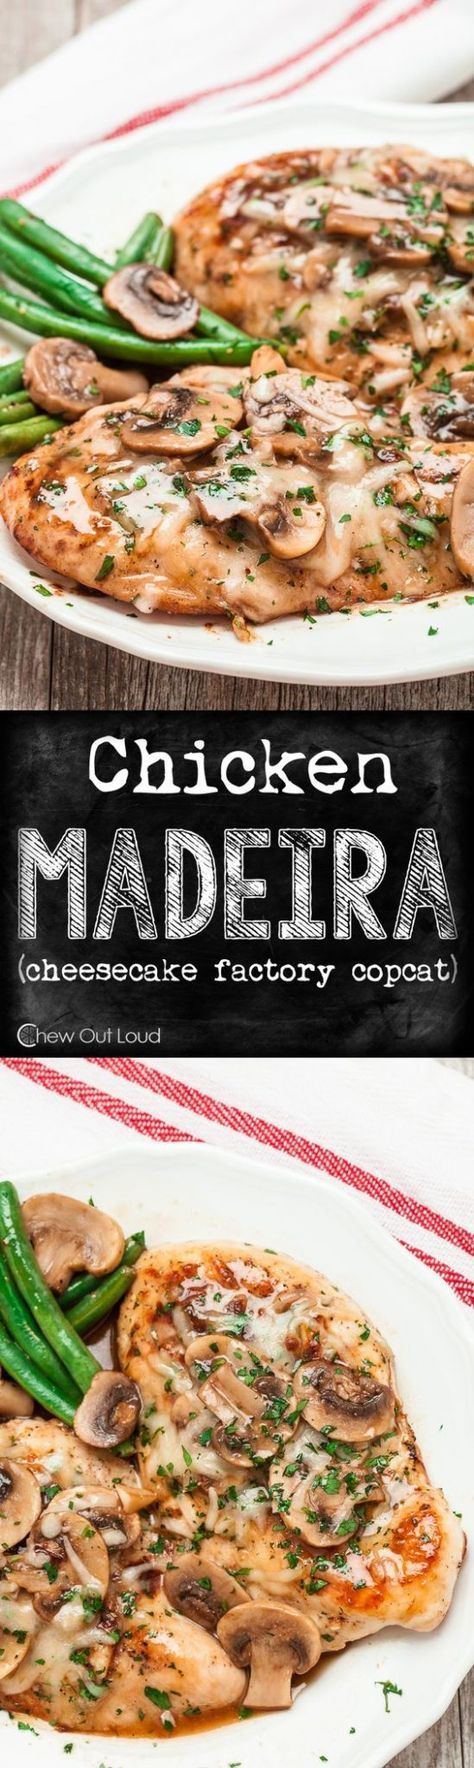 Chicken Recipes - Chicken Madeira - Cheesecake Factory Copycat Recipe via Chew Out Loud - This is SO delicious! #chickenrecipes #popularchickenrecipes #chicken #easychickenrecipes #chickenbreastrecipes #easylunches #easydinners